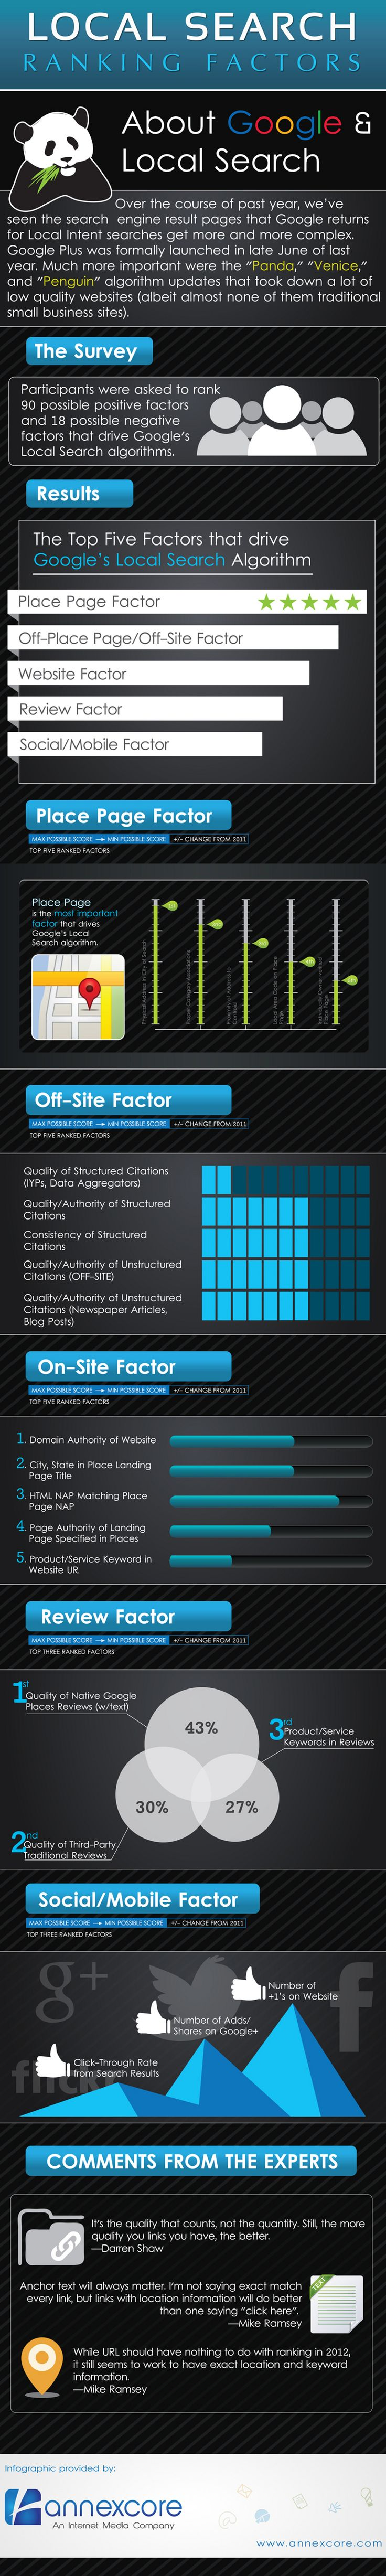 Local Search Engine Ranking Factors1 23 Local Search Engine Ranking Factors that Affect Google Rankings